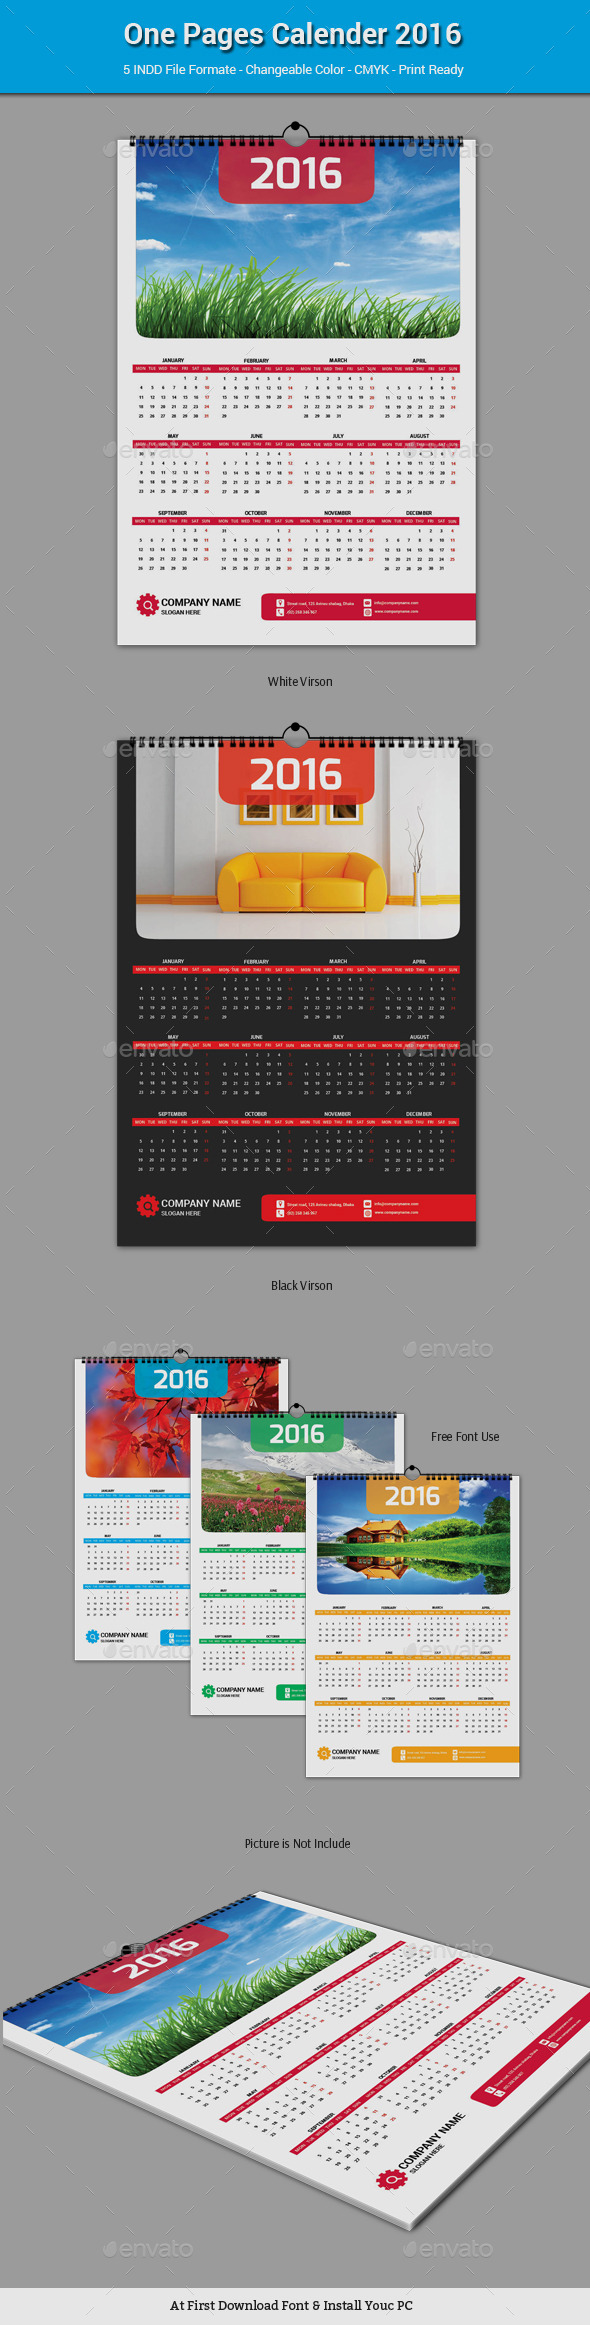 One Pages Calender 2016 - Calendars Stationery